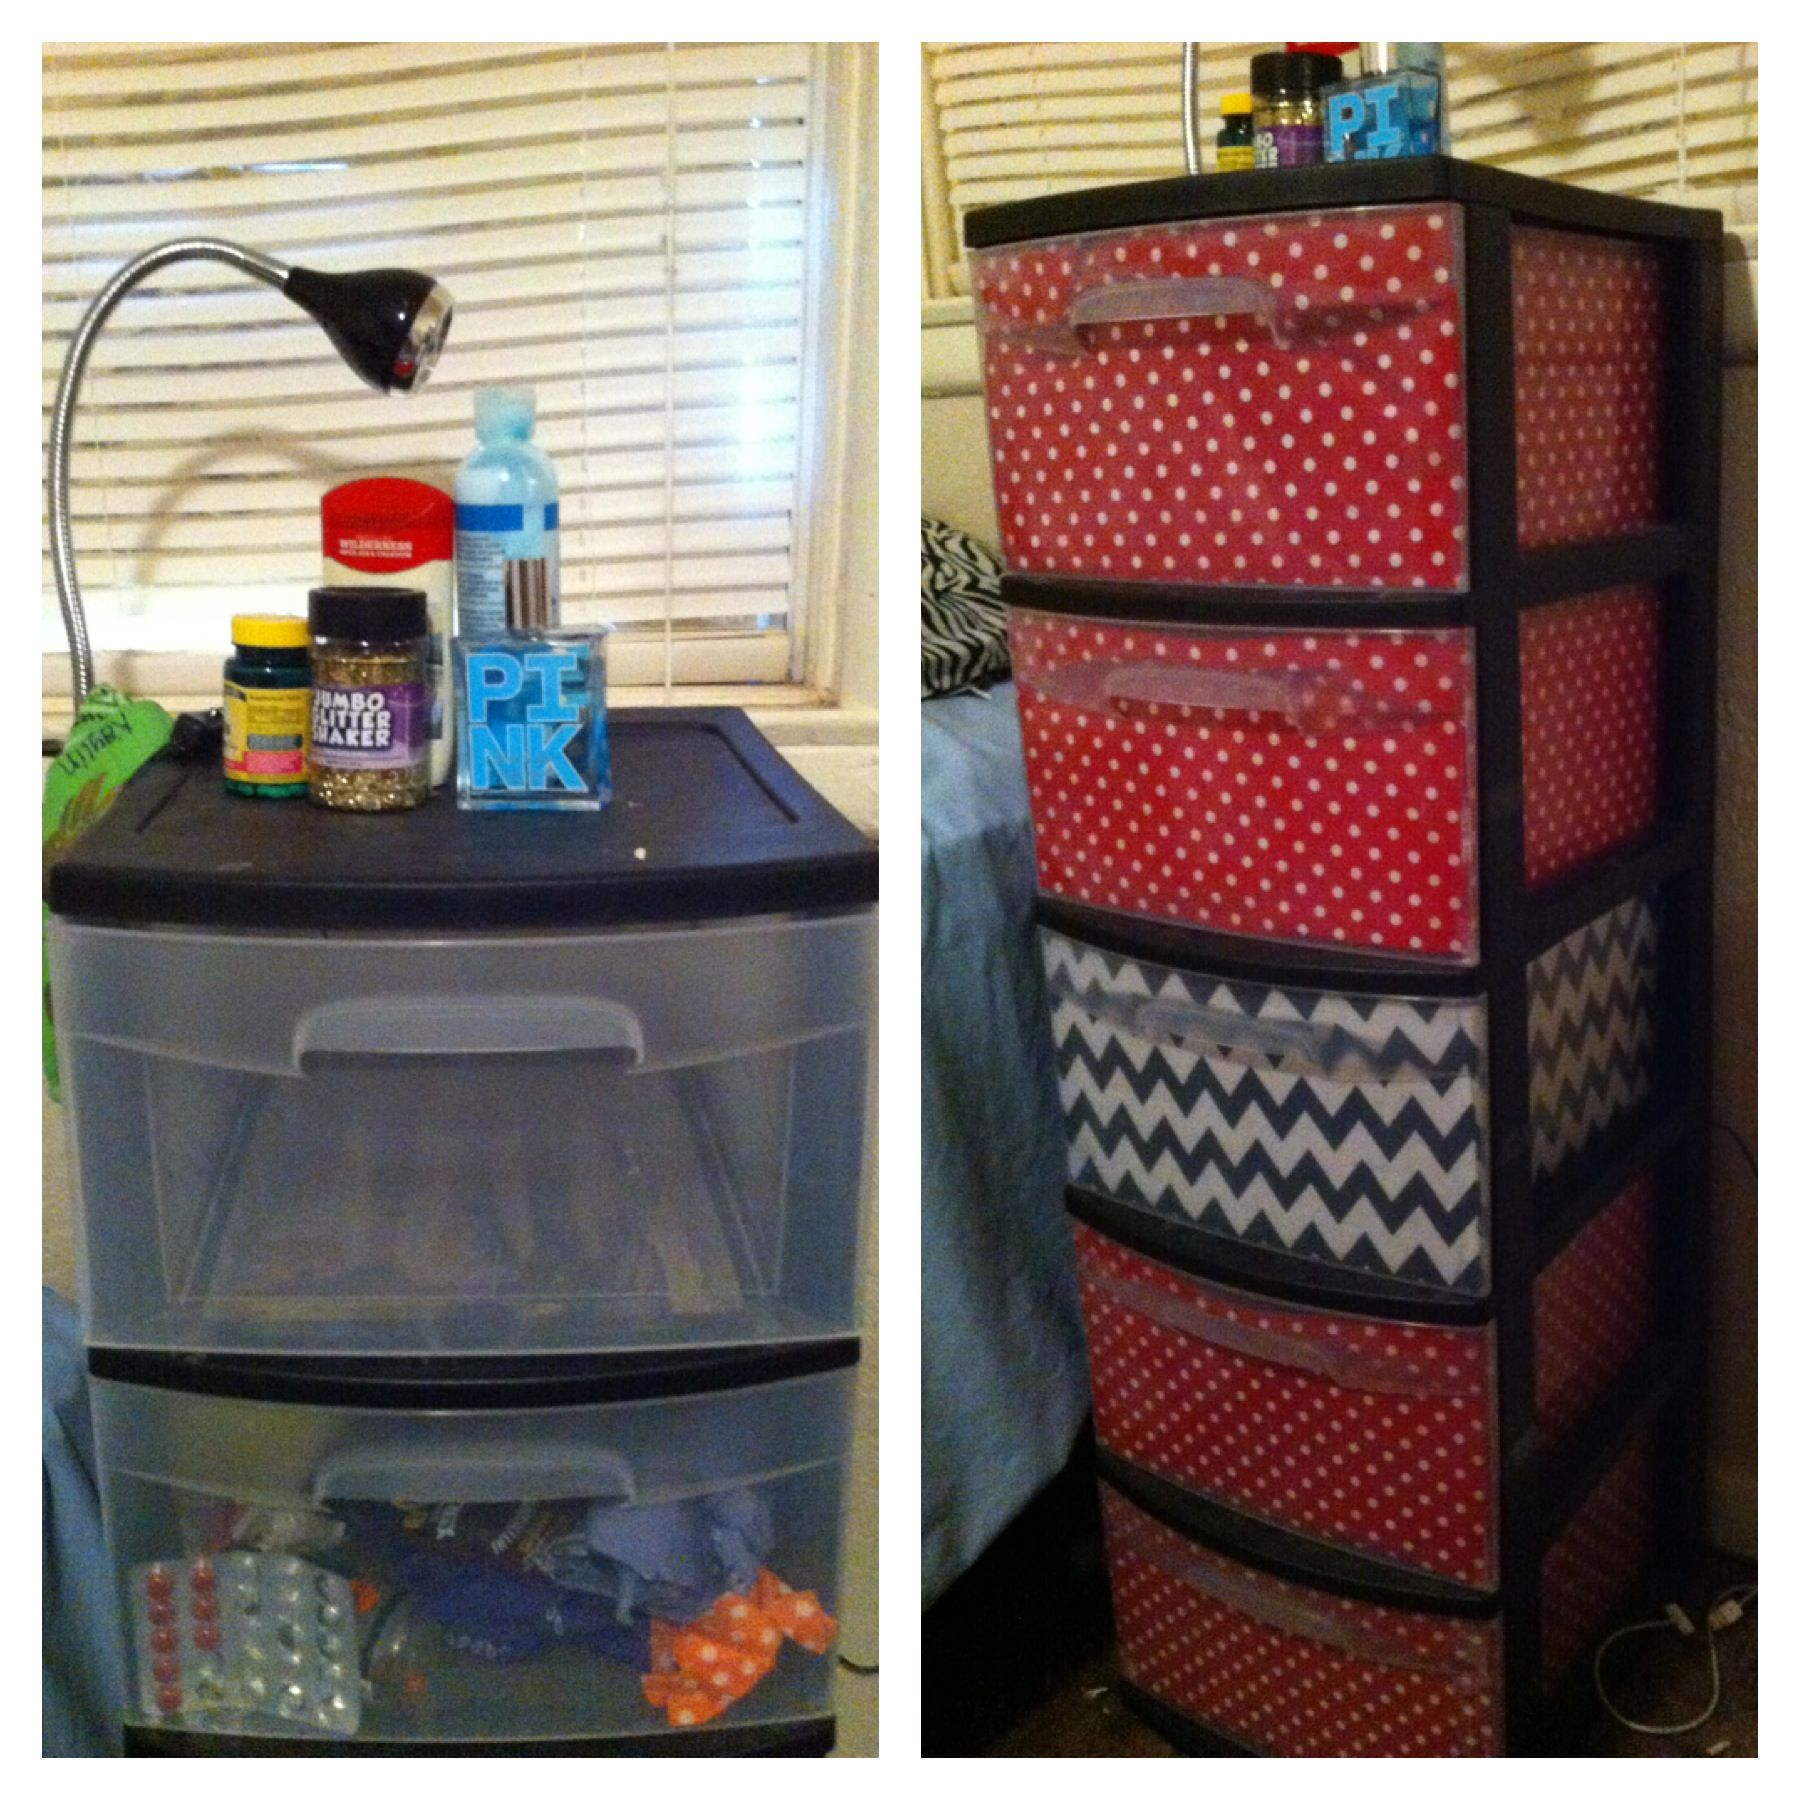 diy dorm room makeover use scrap fabric and mod podge to turn clear storage bins into cute decorative bins room decor pinterest diy dorm room